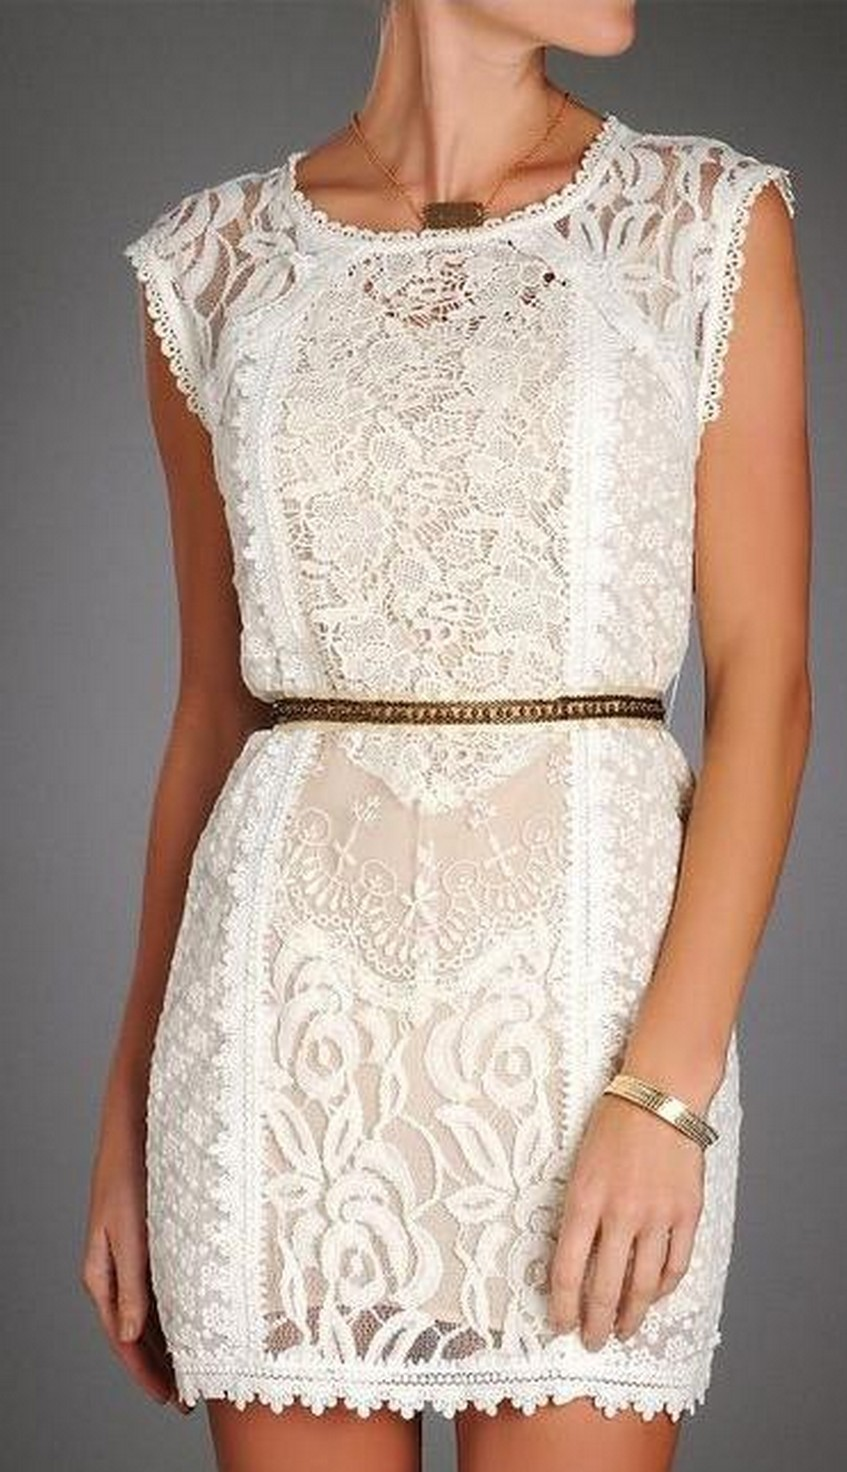 9. Lace | 10 Types of Dresses for Christmas Day | Image Source: http://southmoonunder.com